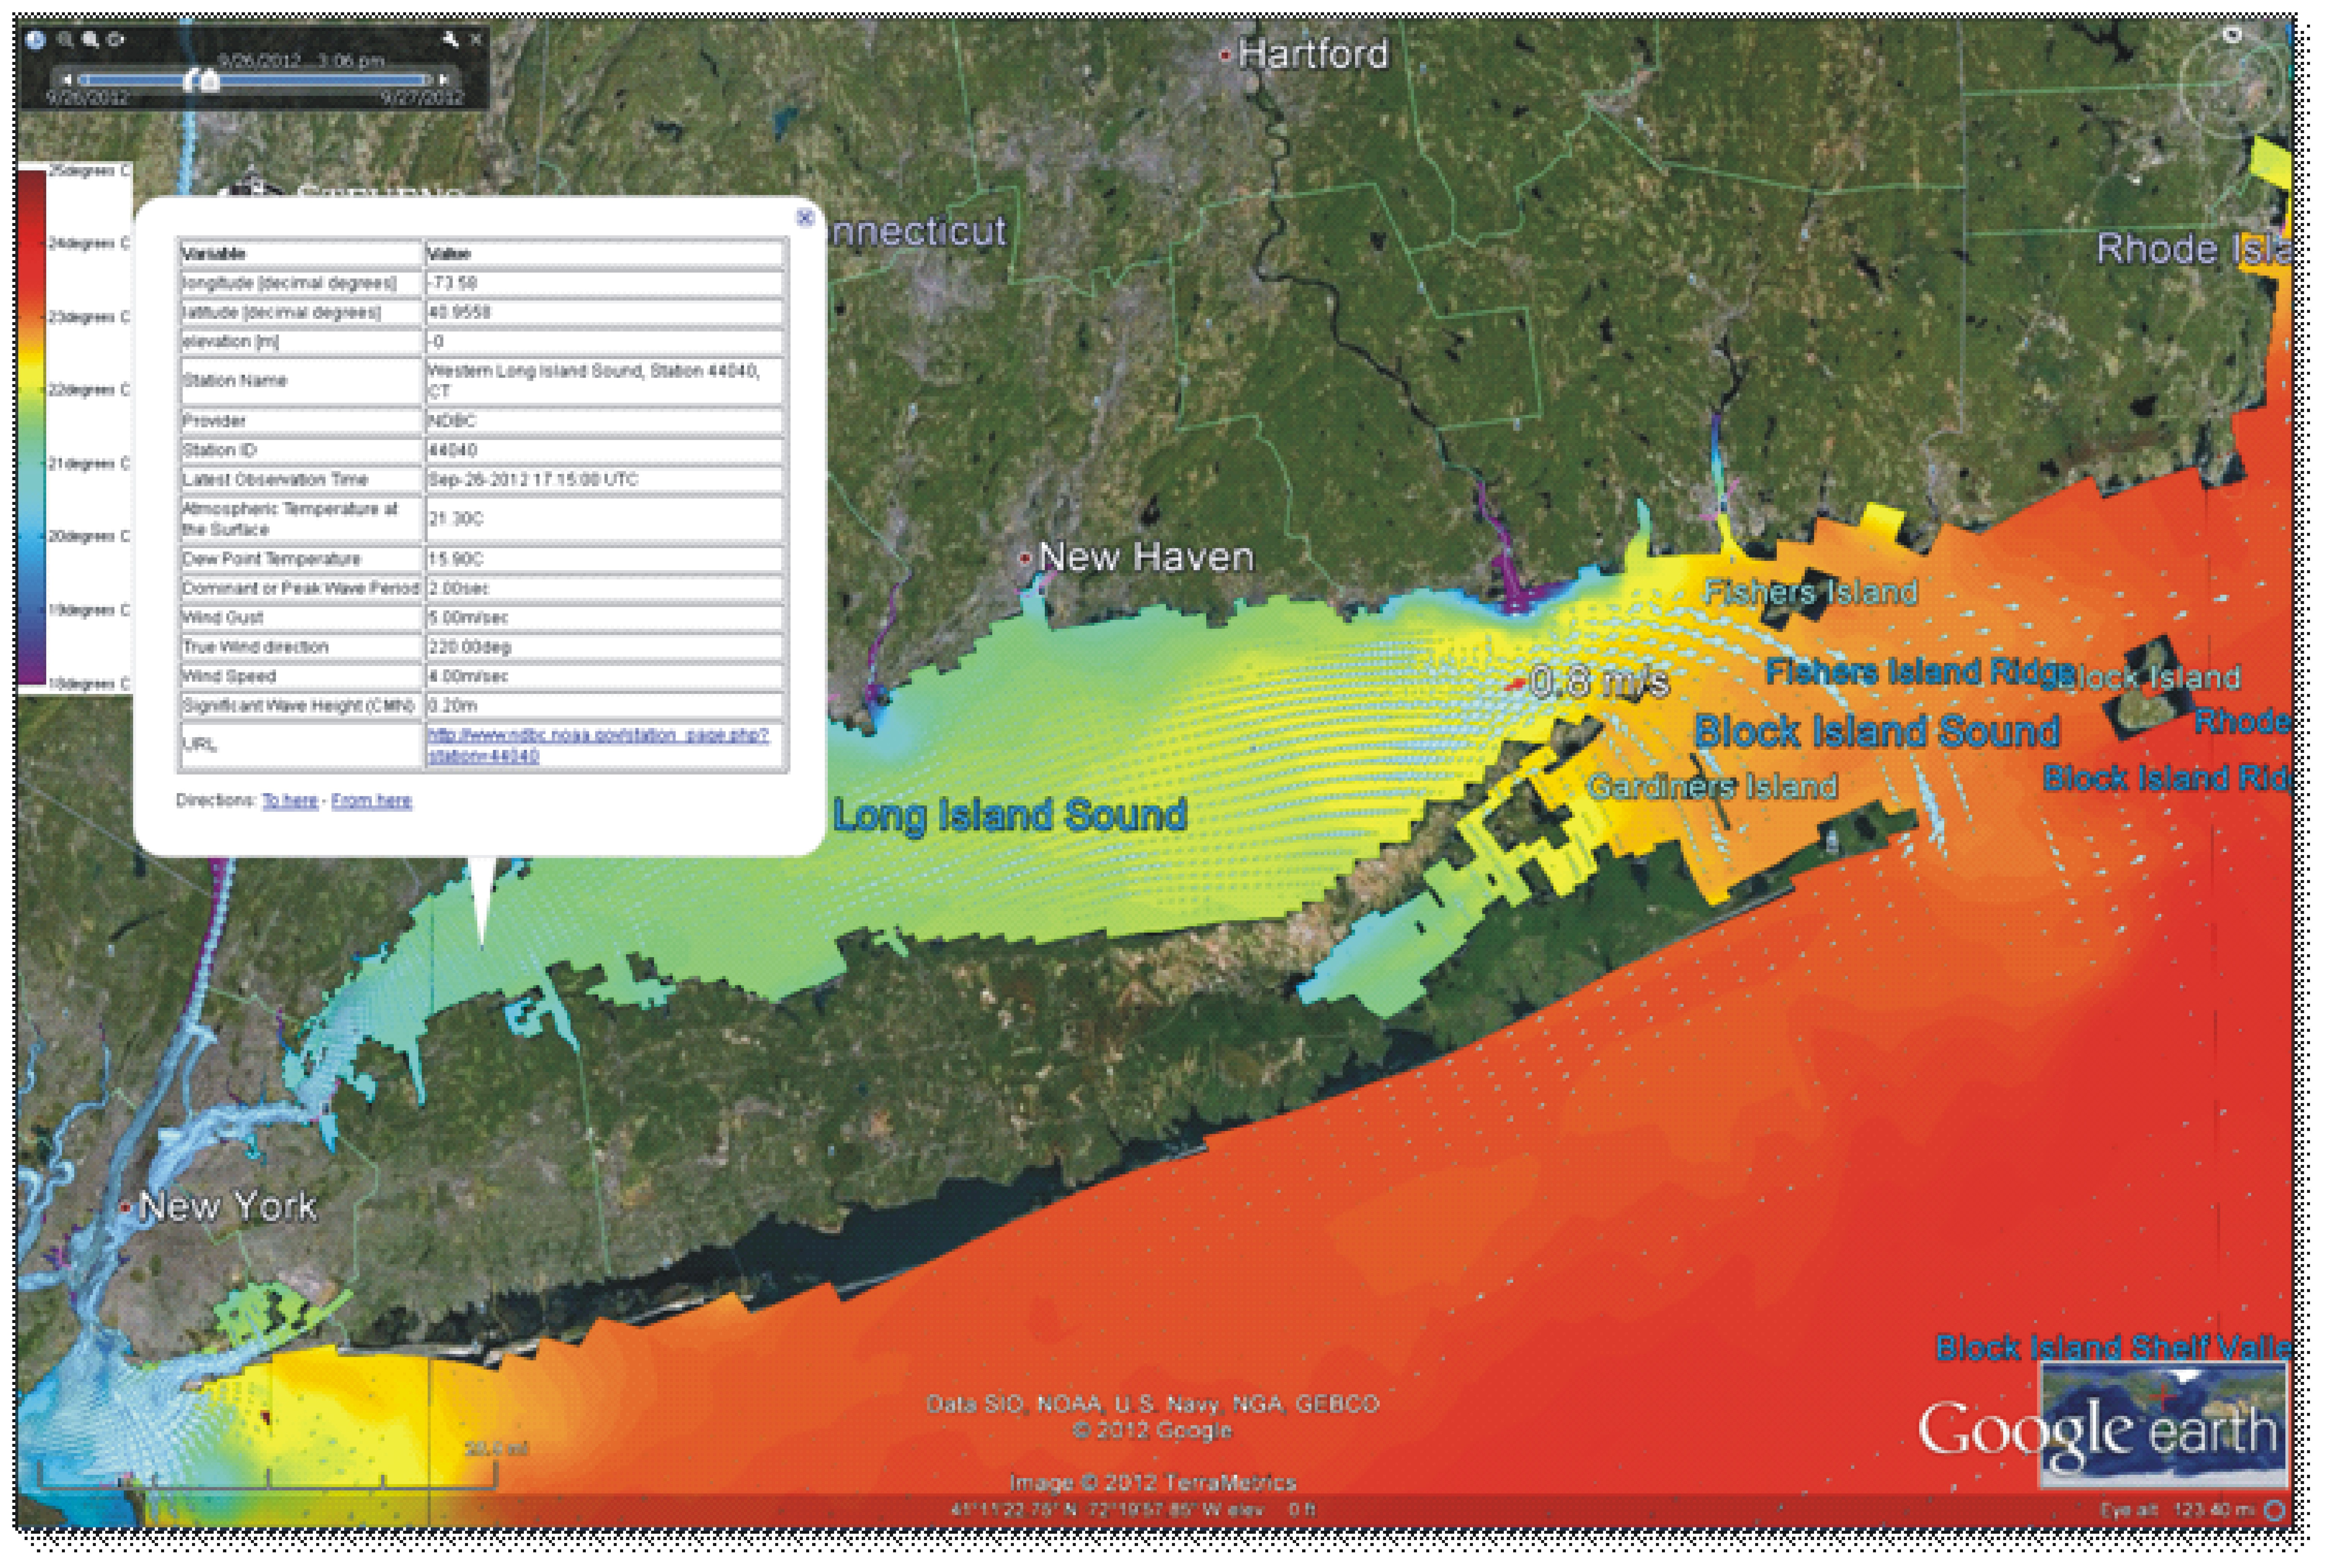 the long island sound Page 3 of 28 1 introduction: this report summarizes the outcomes of the long island sound sea floor mapping workshop held november 30, 2007 at fort trumbull state park in new london, ct.